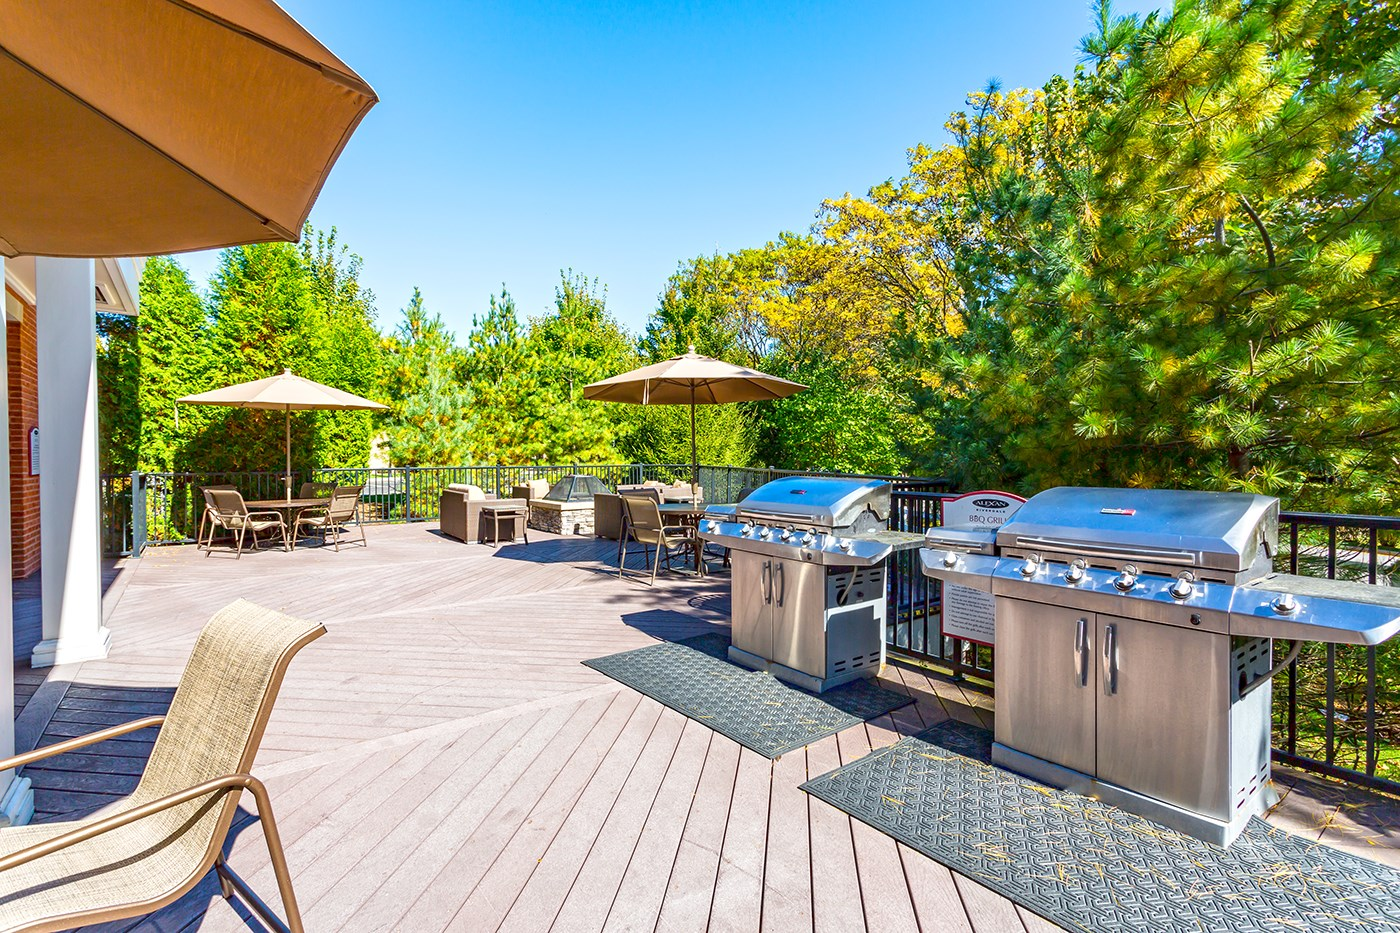 Grills at The Reserve at Riverdale Apartments in Riverdale, NJ